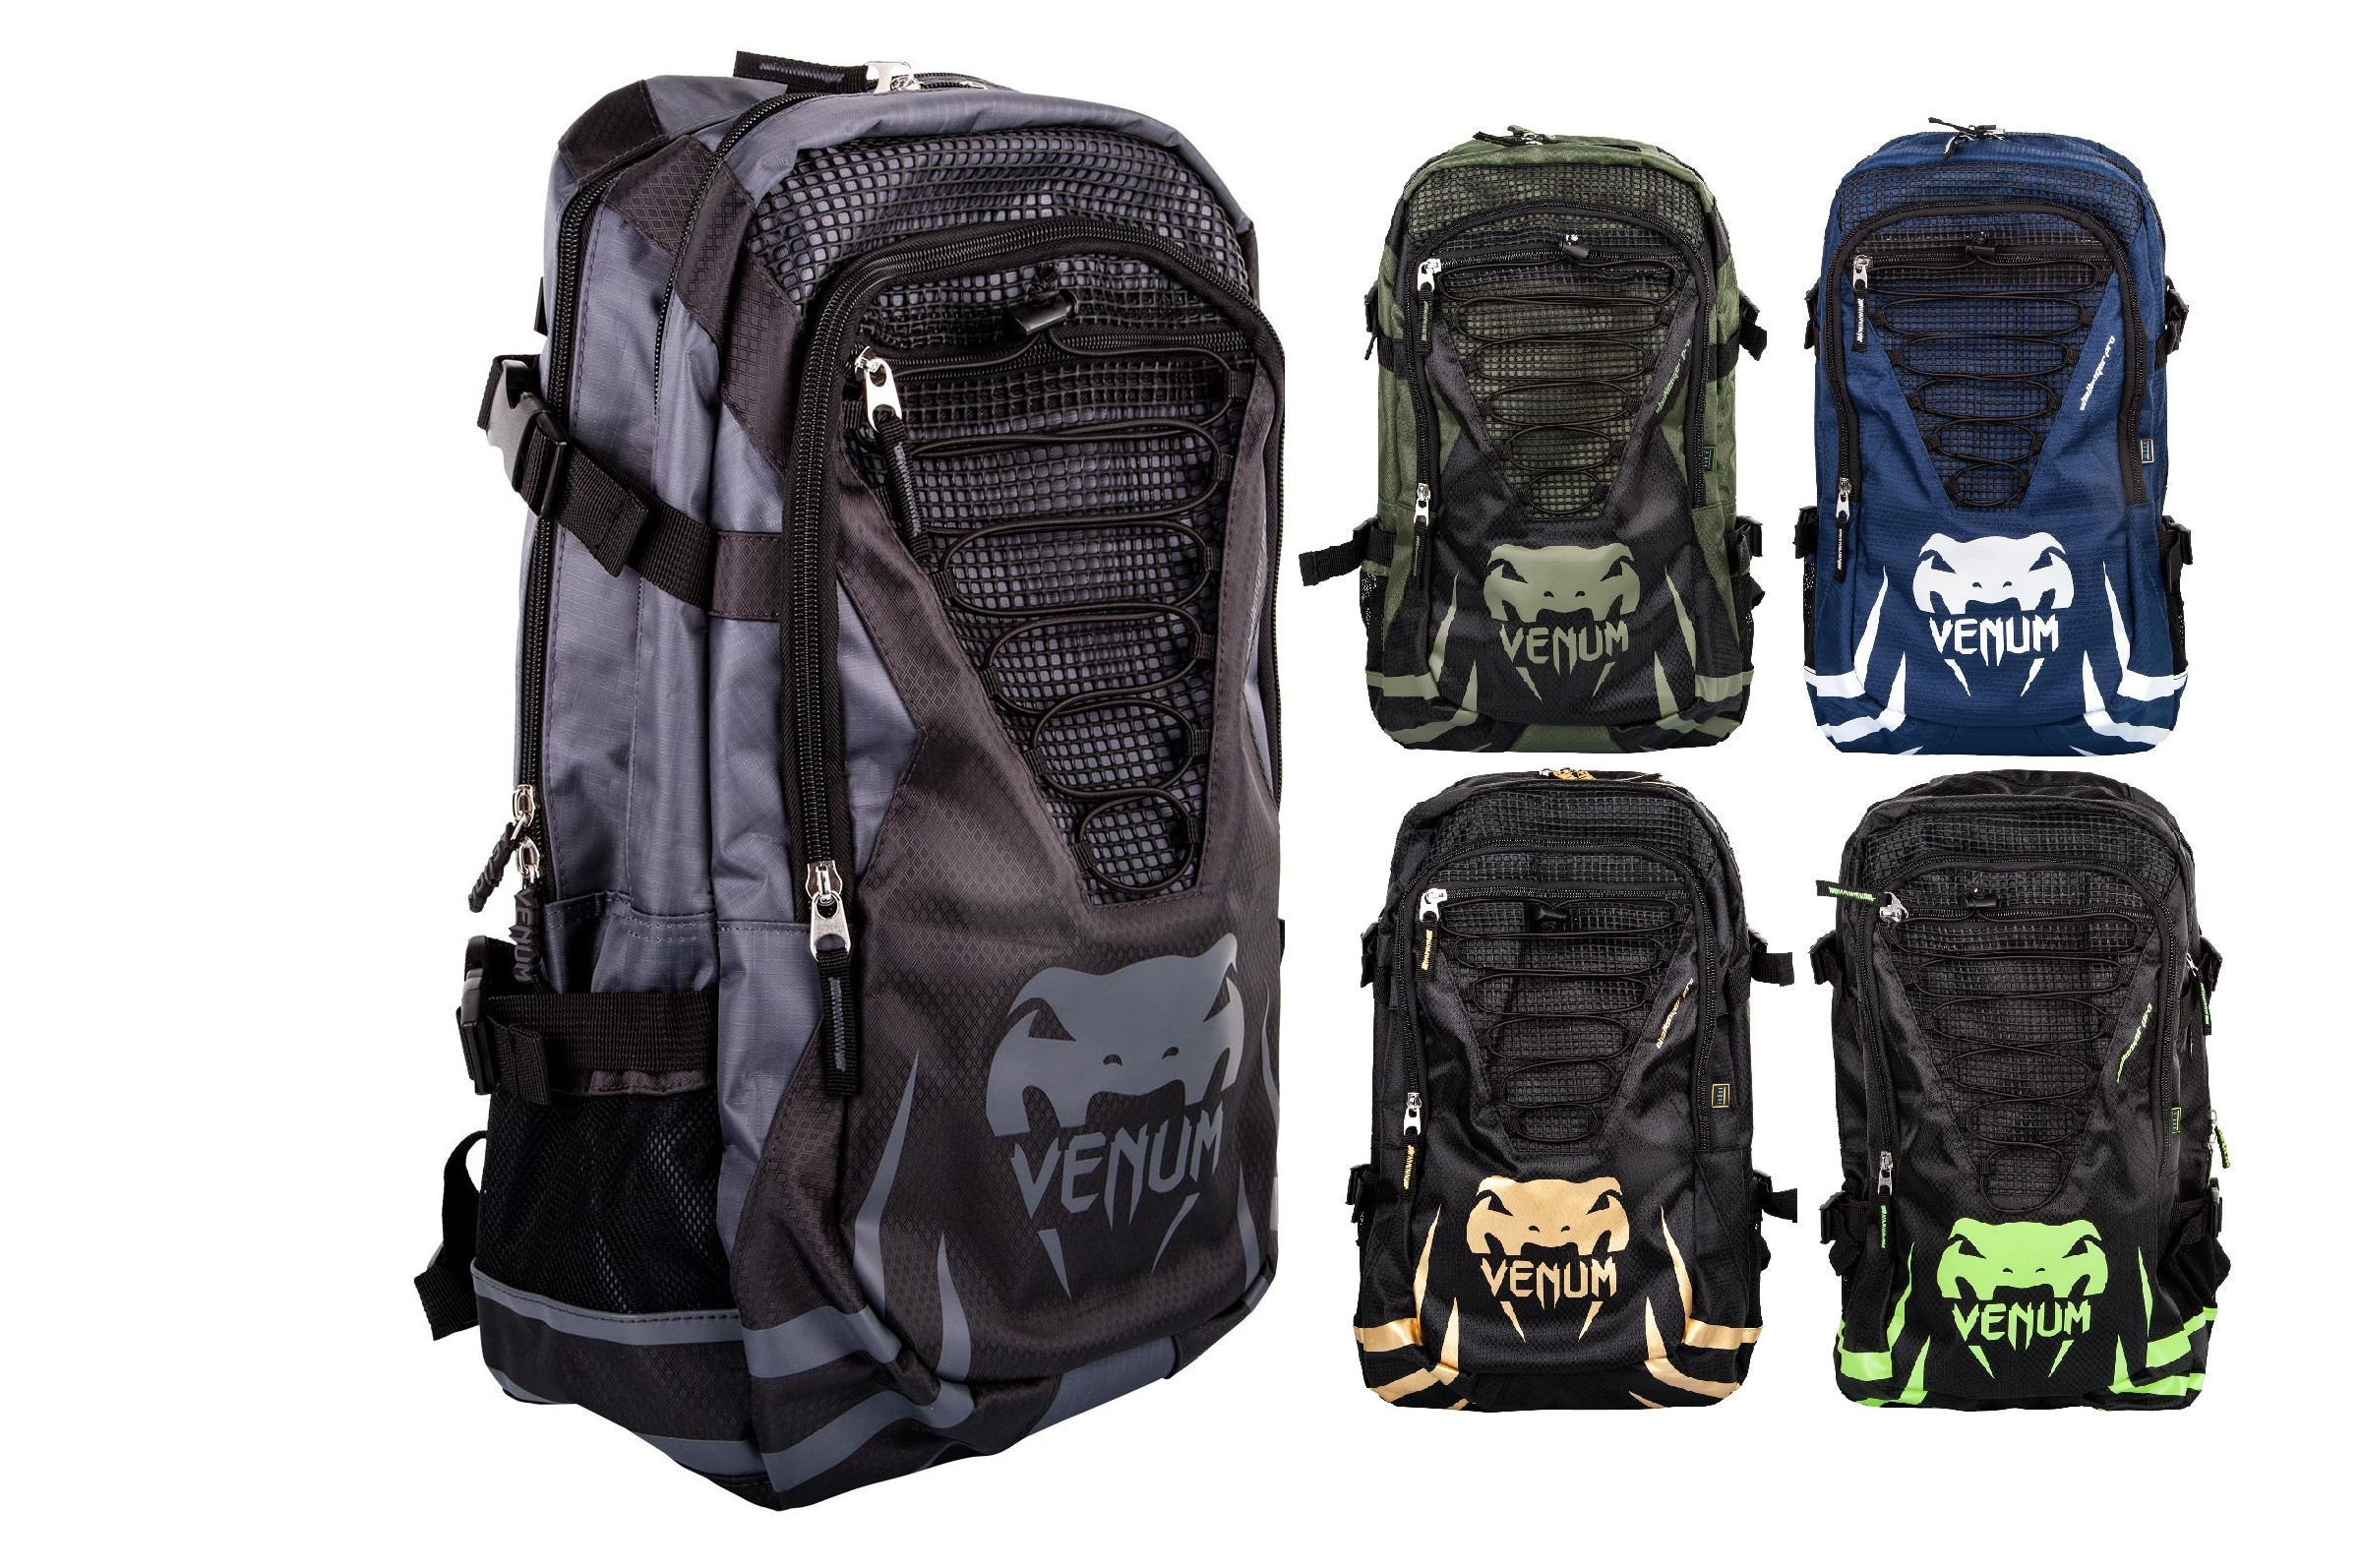 bc899052b3 Venum Challenger Pro Backpack